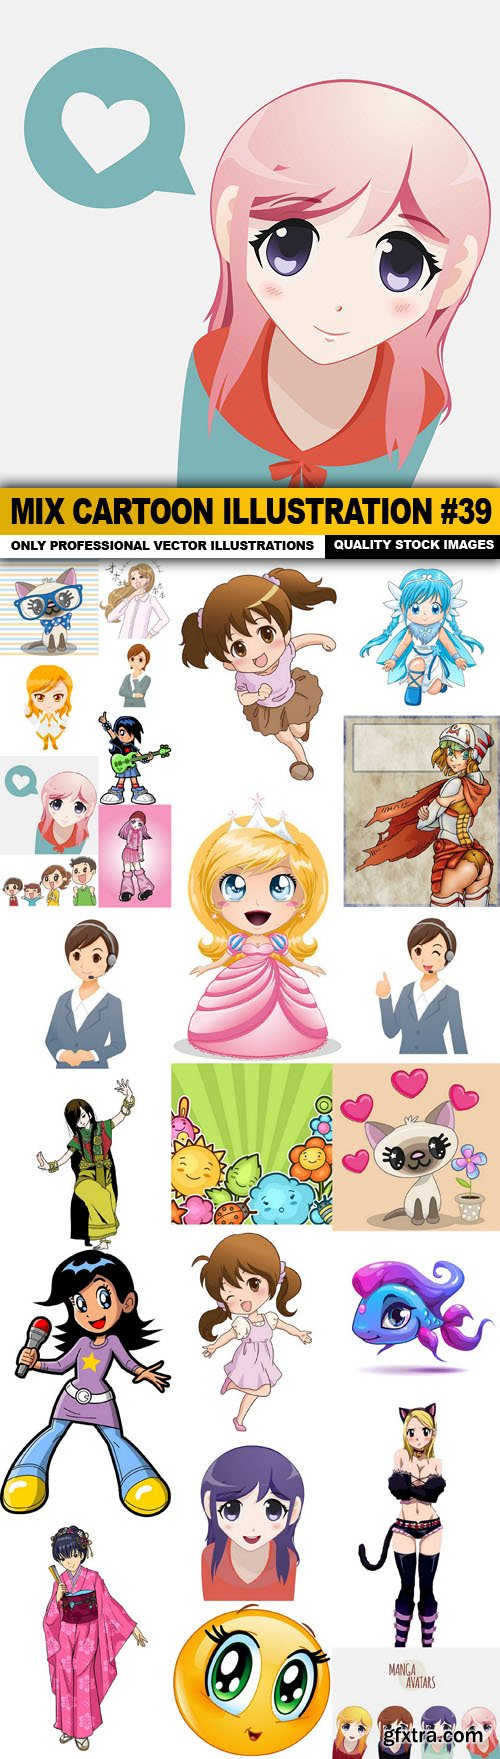 Mix cartoon Illustration #39 - 25 Vector